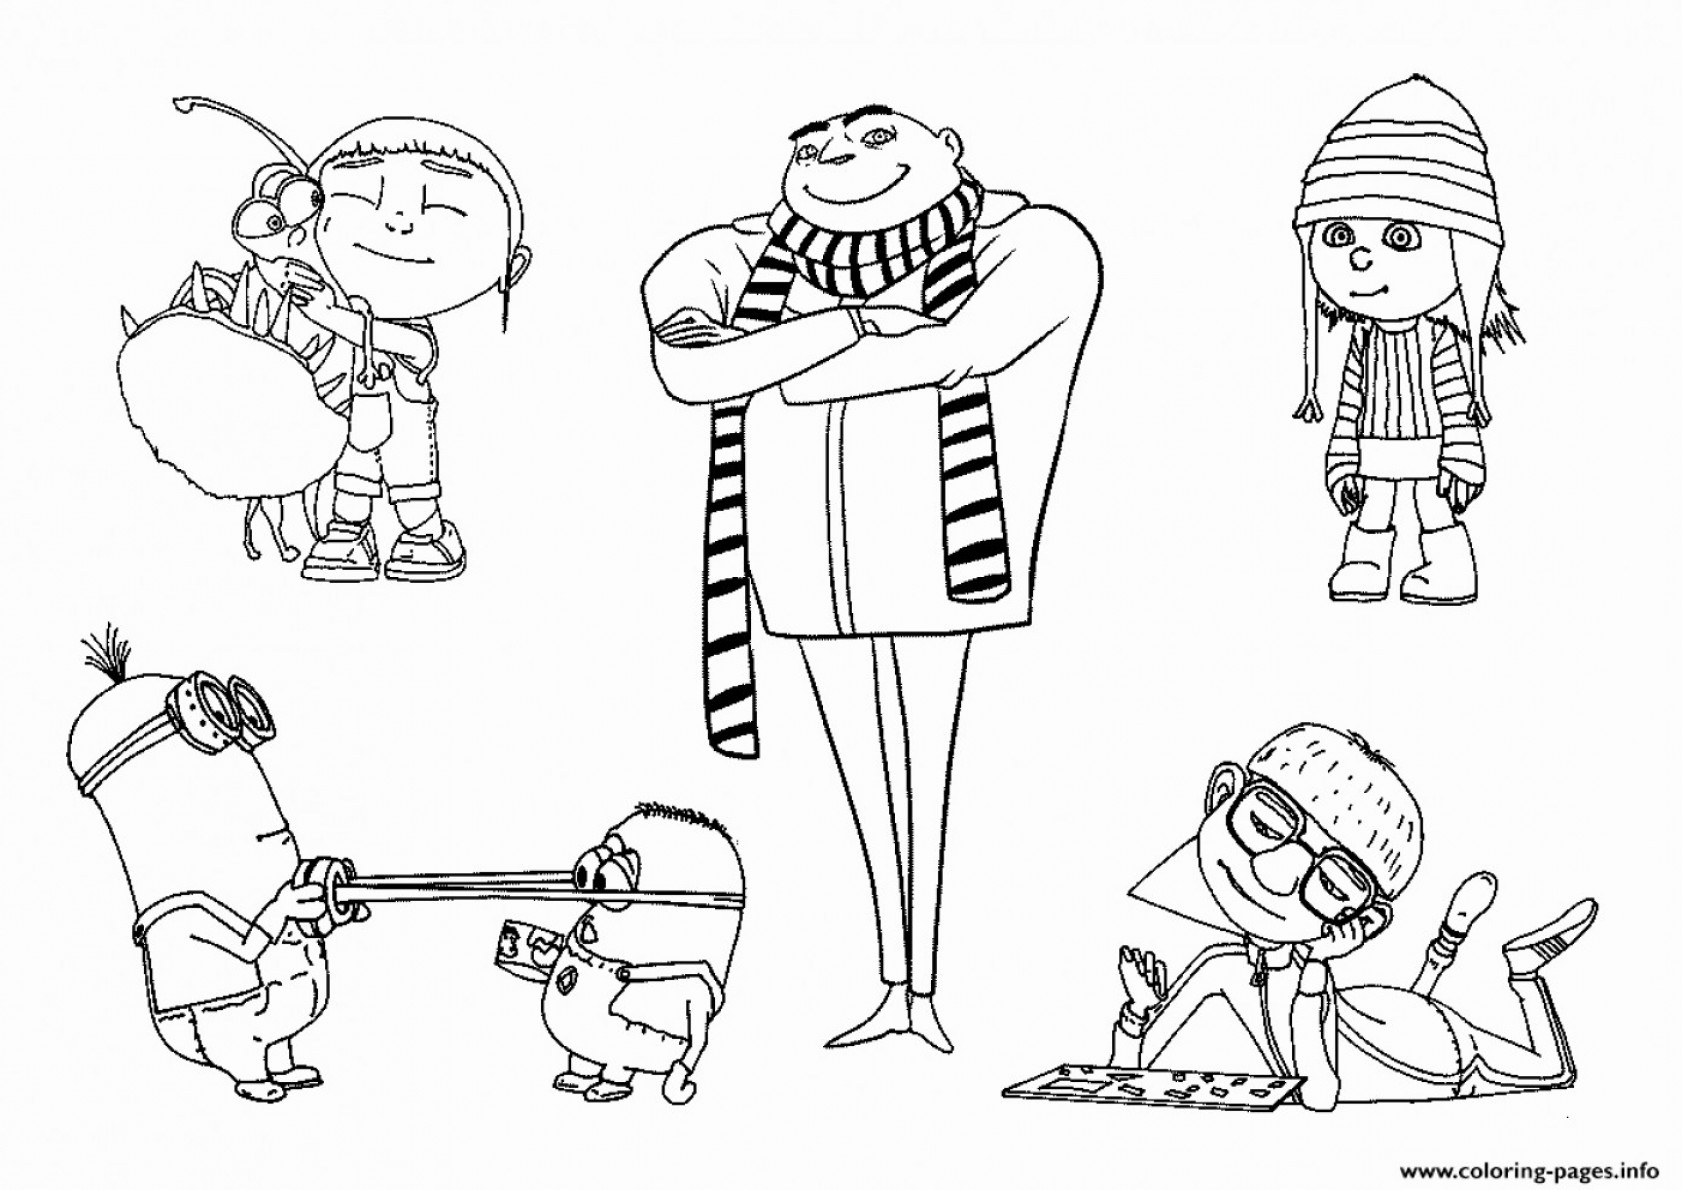 minion coloring pages - Free Large Images | 1190x1682